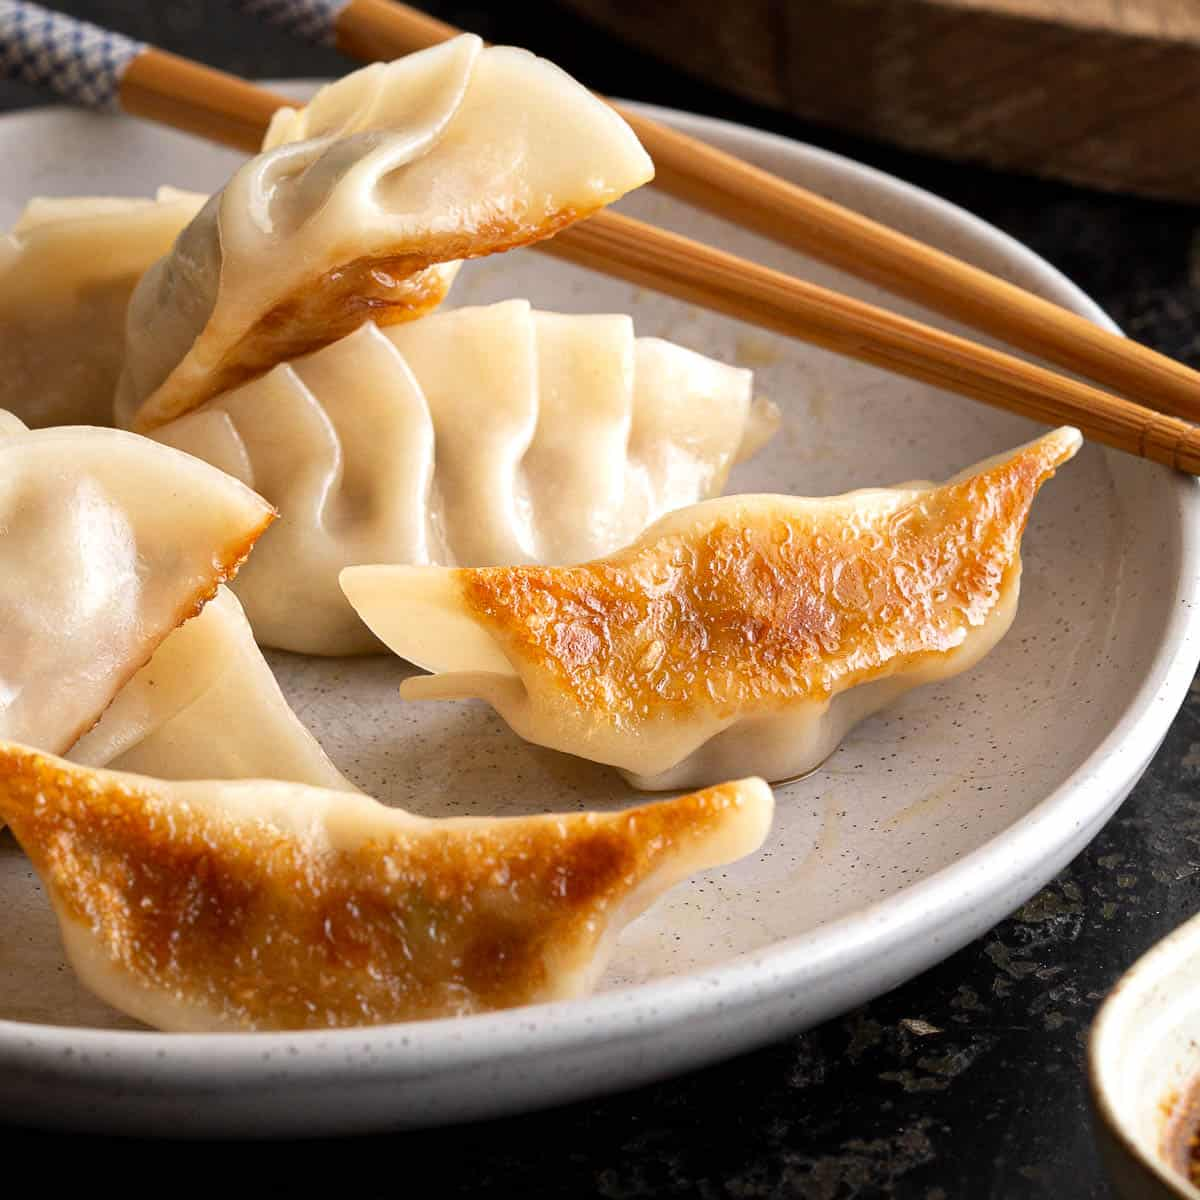 Crispy gyoza on a plate with dipping sauce.